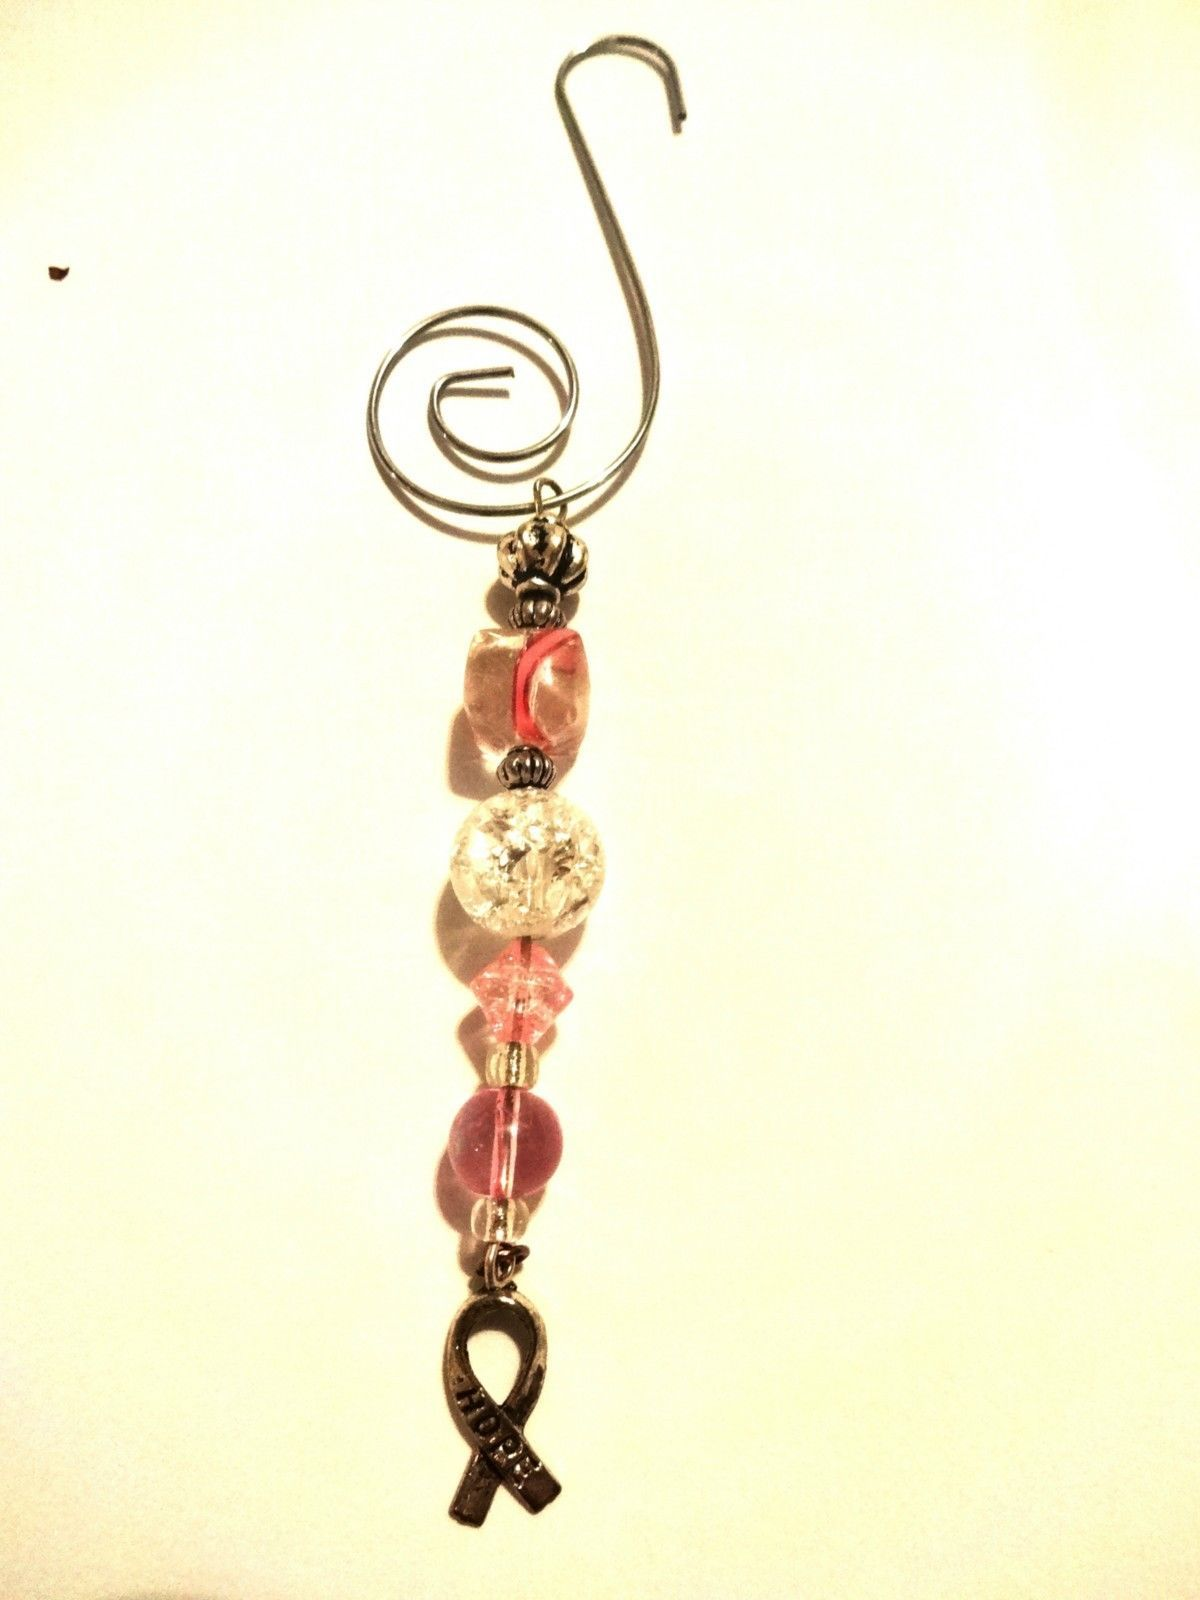 Hand Crafted Pink Breast Cancer Awareness Ornament With Silver Hope Ribbon Charm image 9